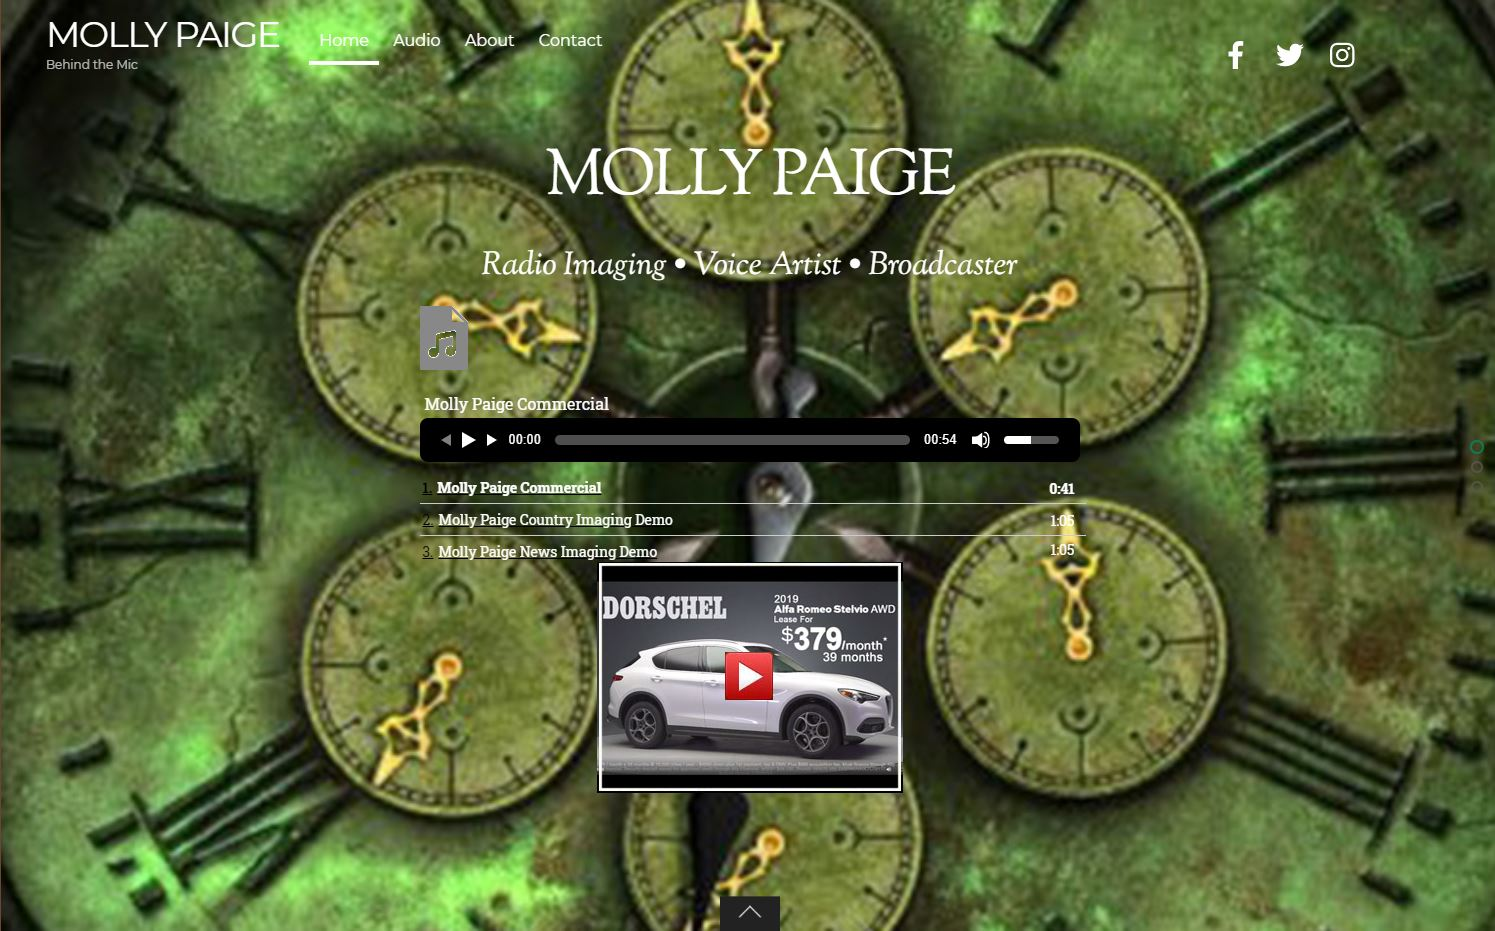 Molly Paige